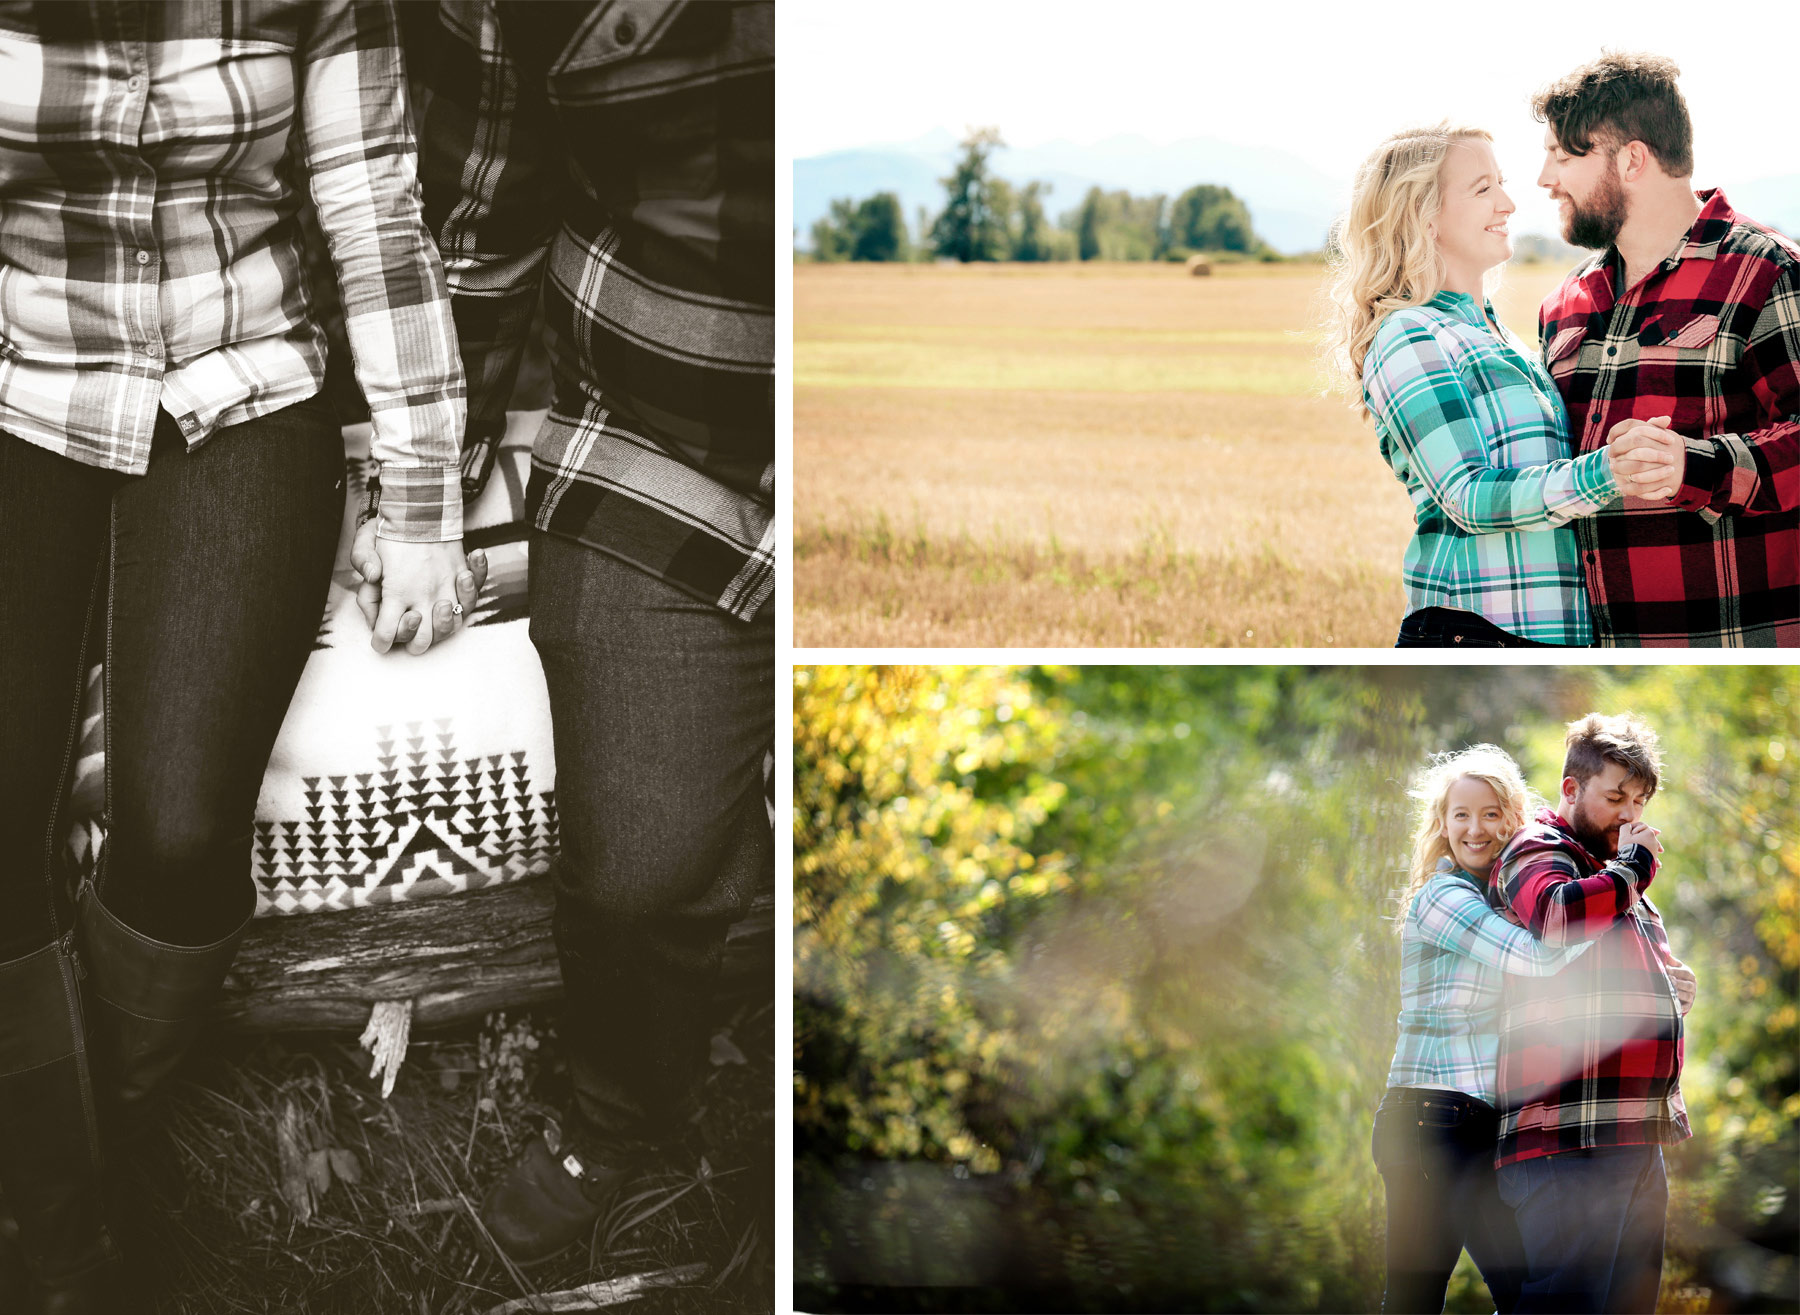 03-Bozeman-Montana-Engagement-Photos-by-Vick-Photography-Destination-Rustic-Mountain-Fields-Molly-&-Carson.jpg